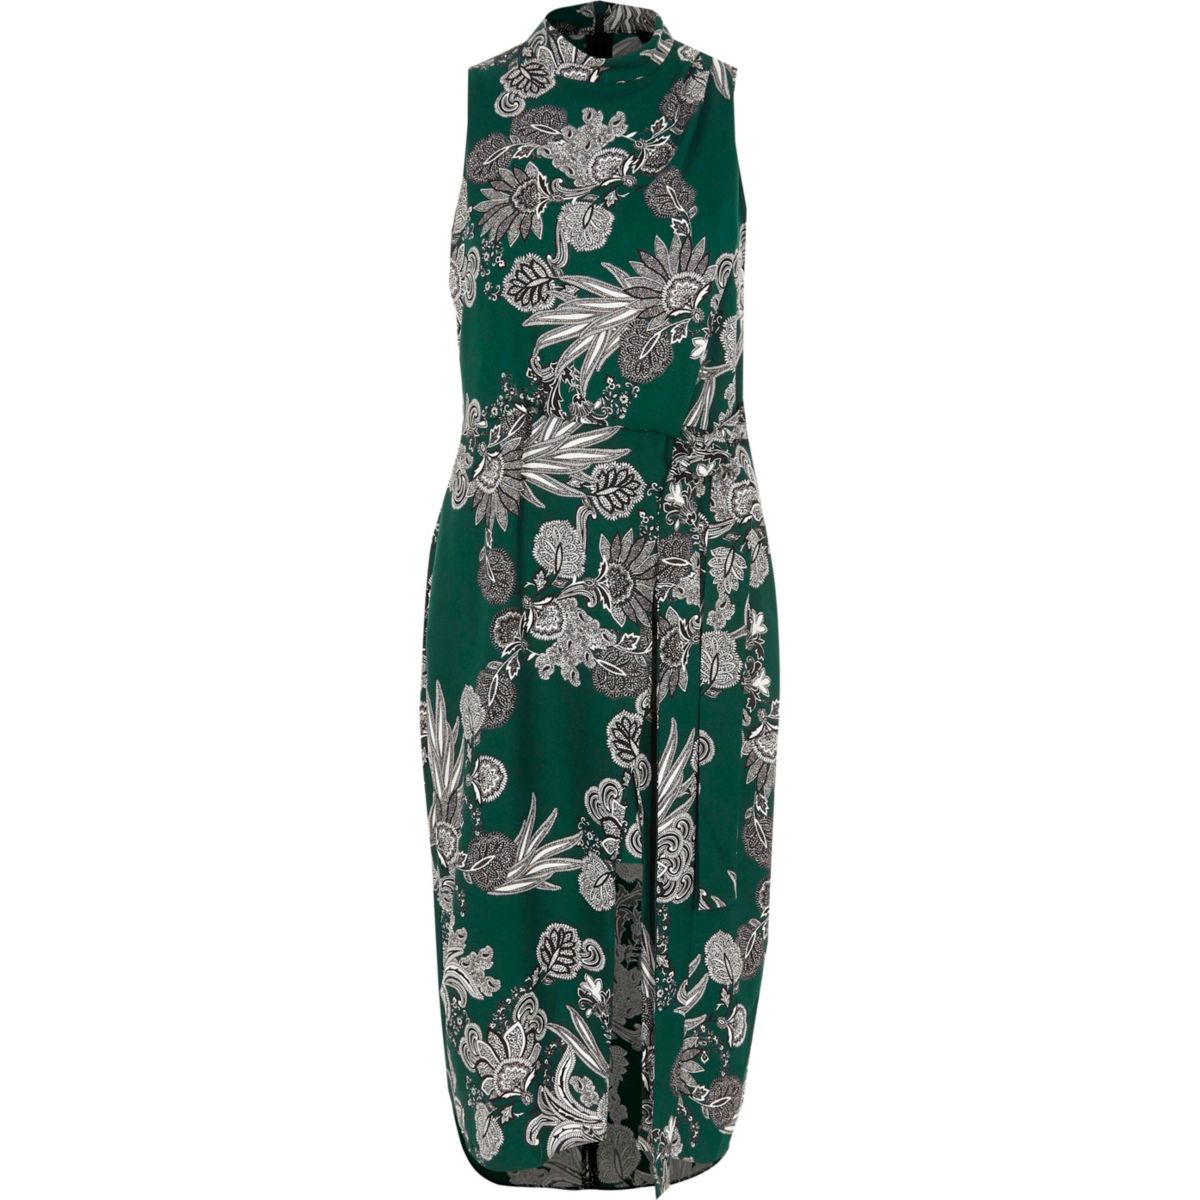 Green floral print high neck midi dress